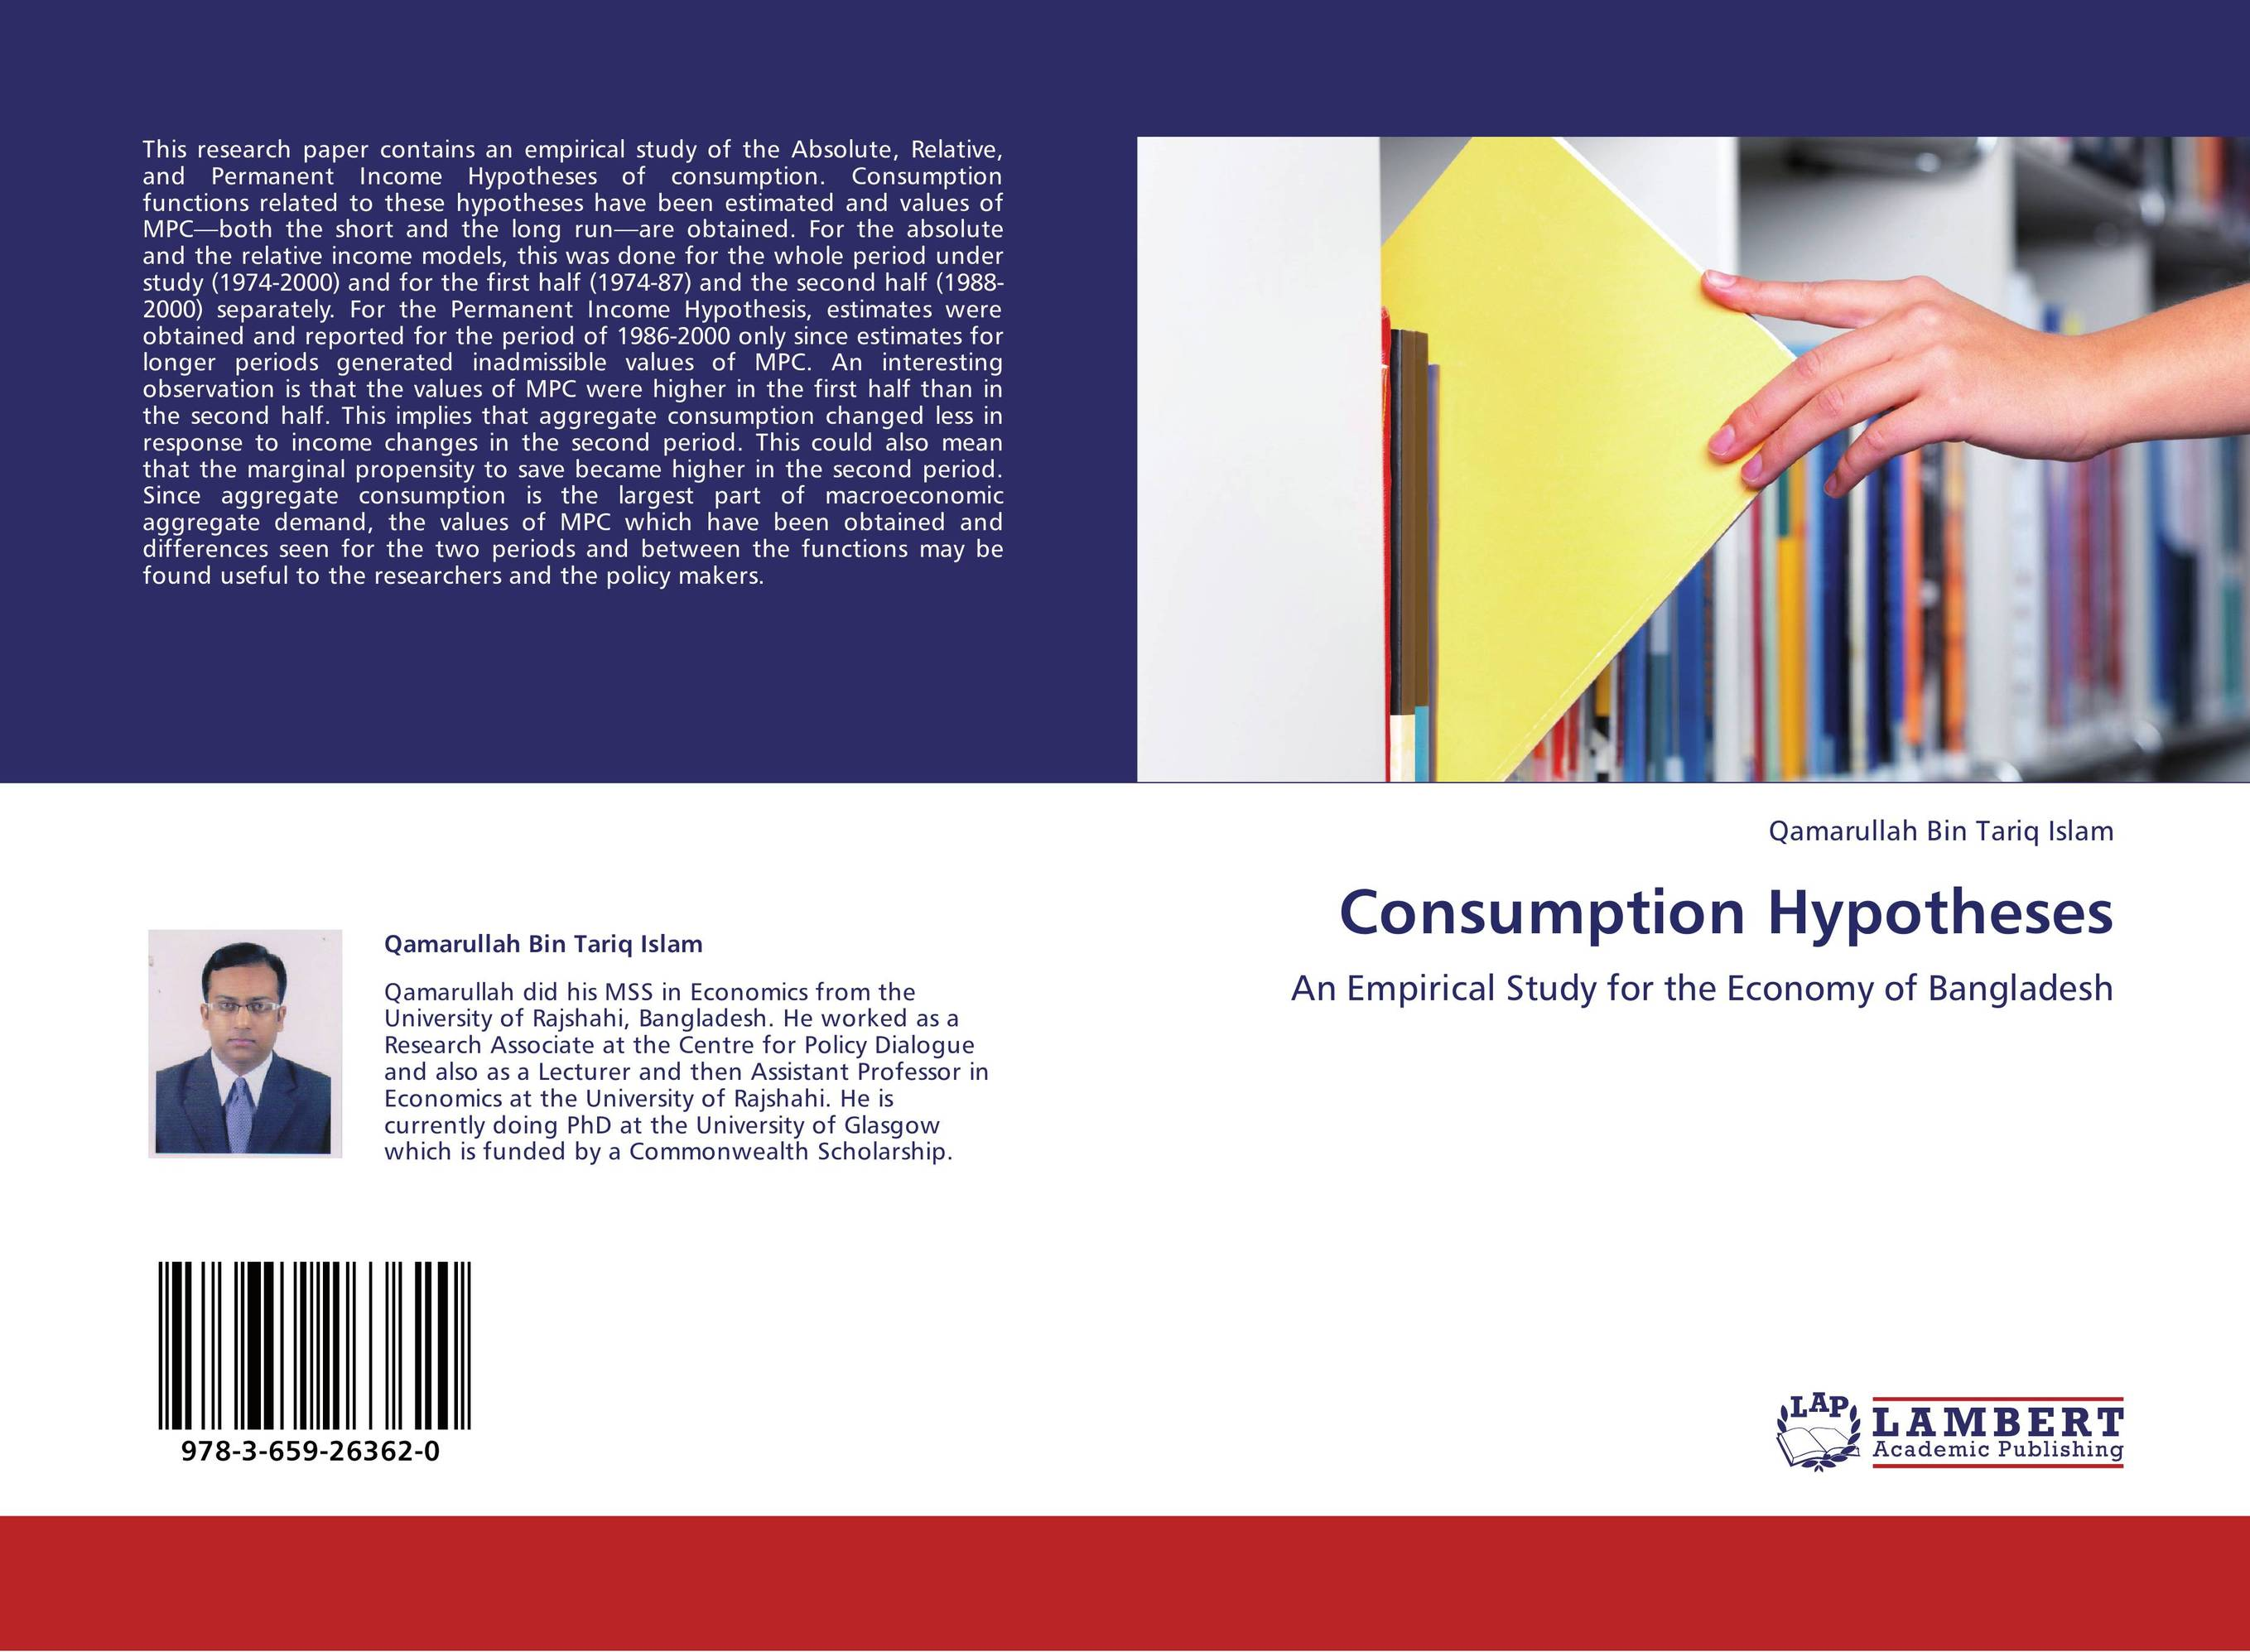 research hypotheses and empirical strategy The research hypothesis is central to all research endeavors, whether qualitative or quantitative, exploratory or explanatory before jumping into writing research hypotheses it is crucial to first consider the general research question posed in a study.